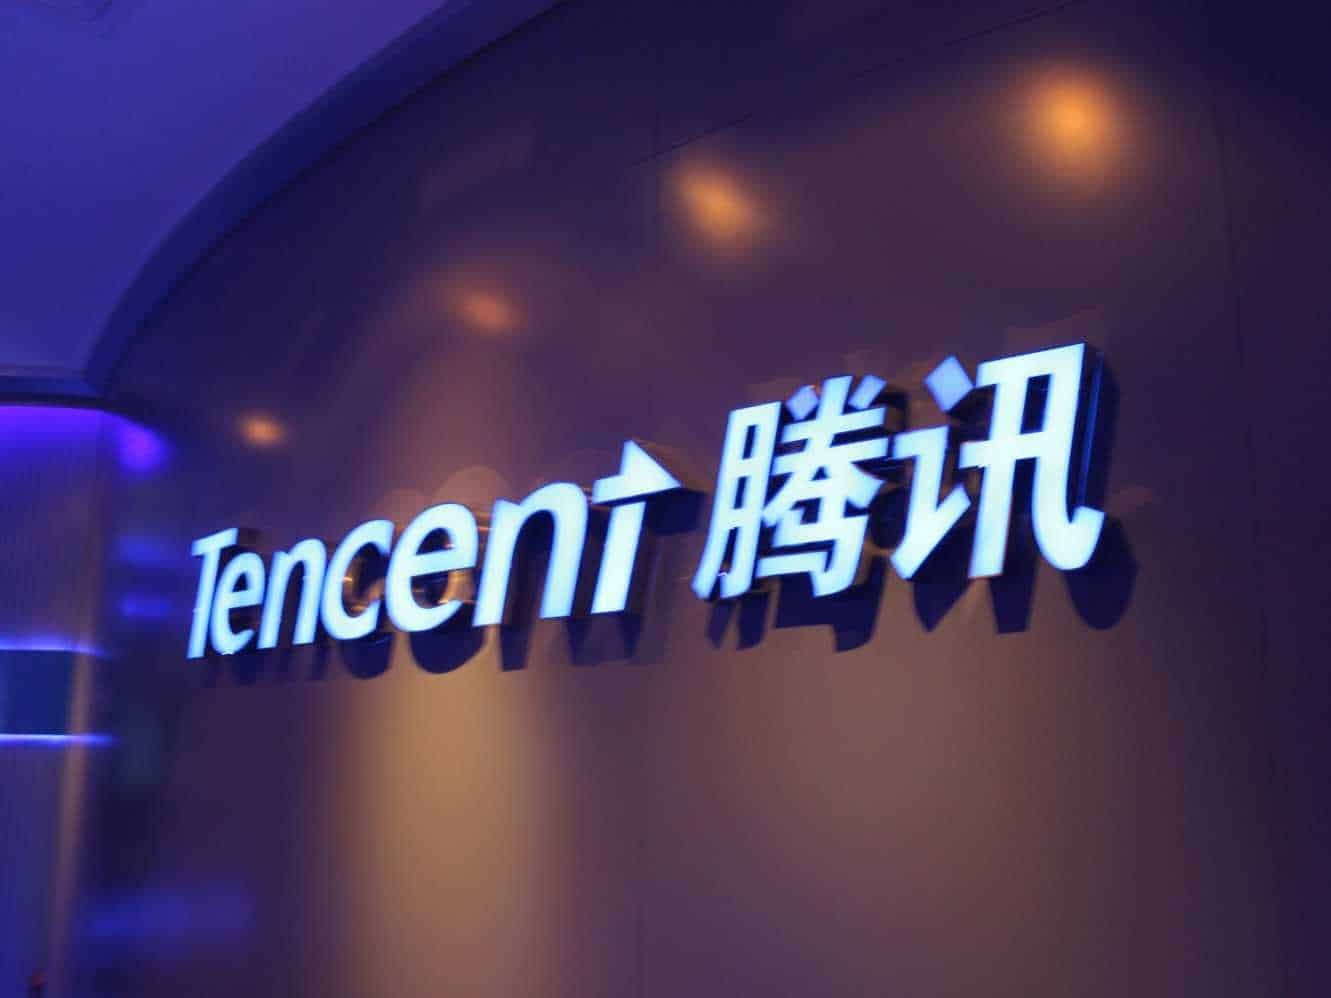 Tencent logo on a wall